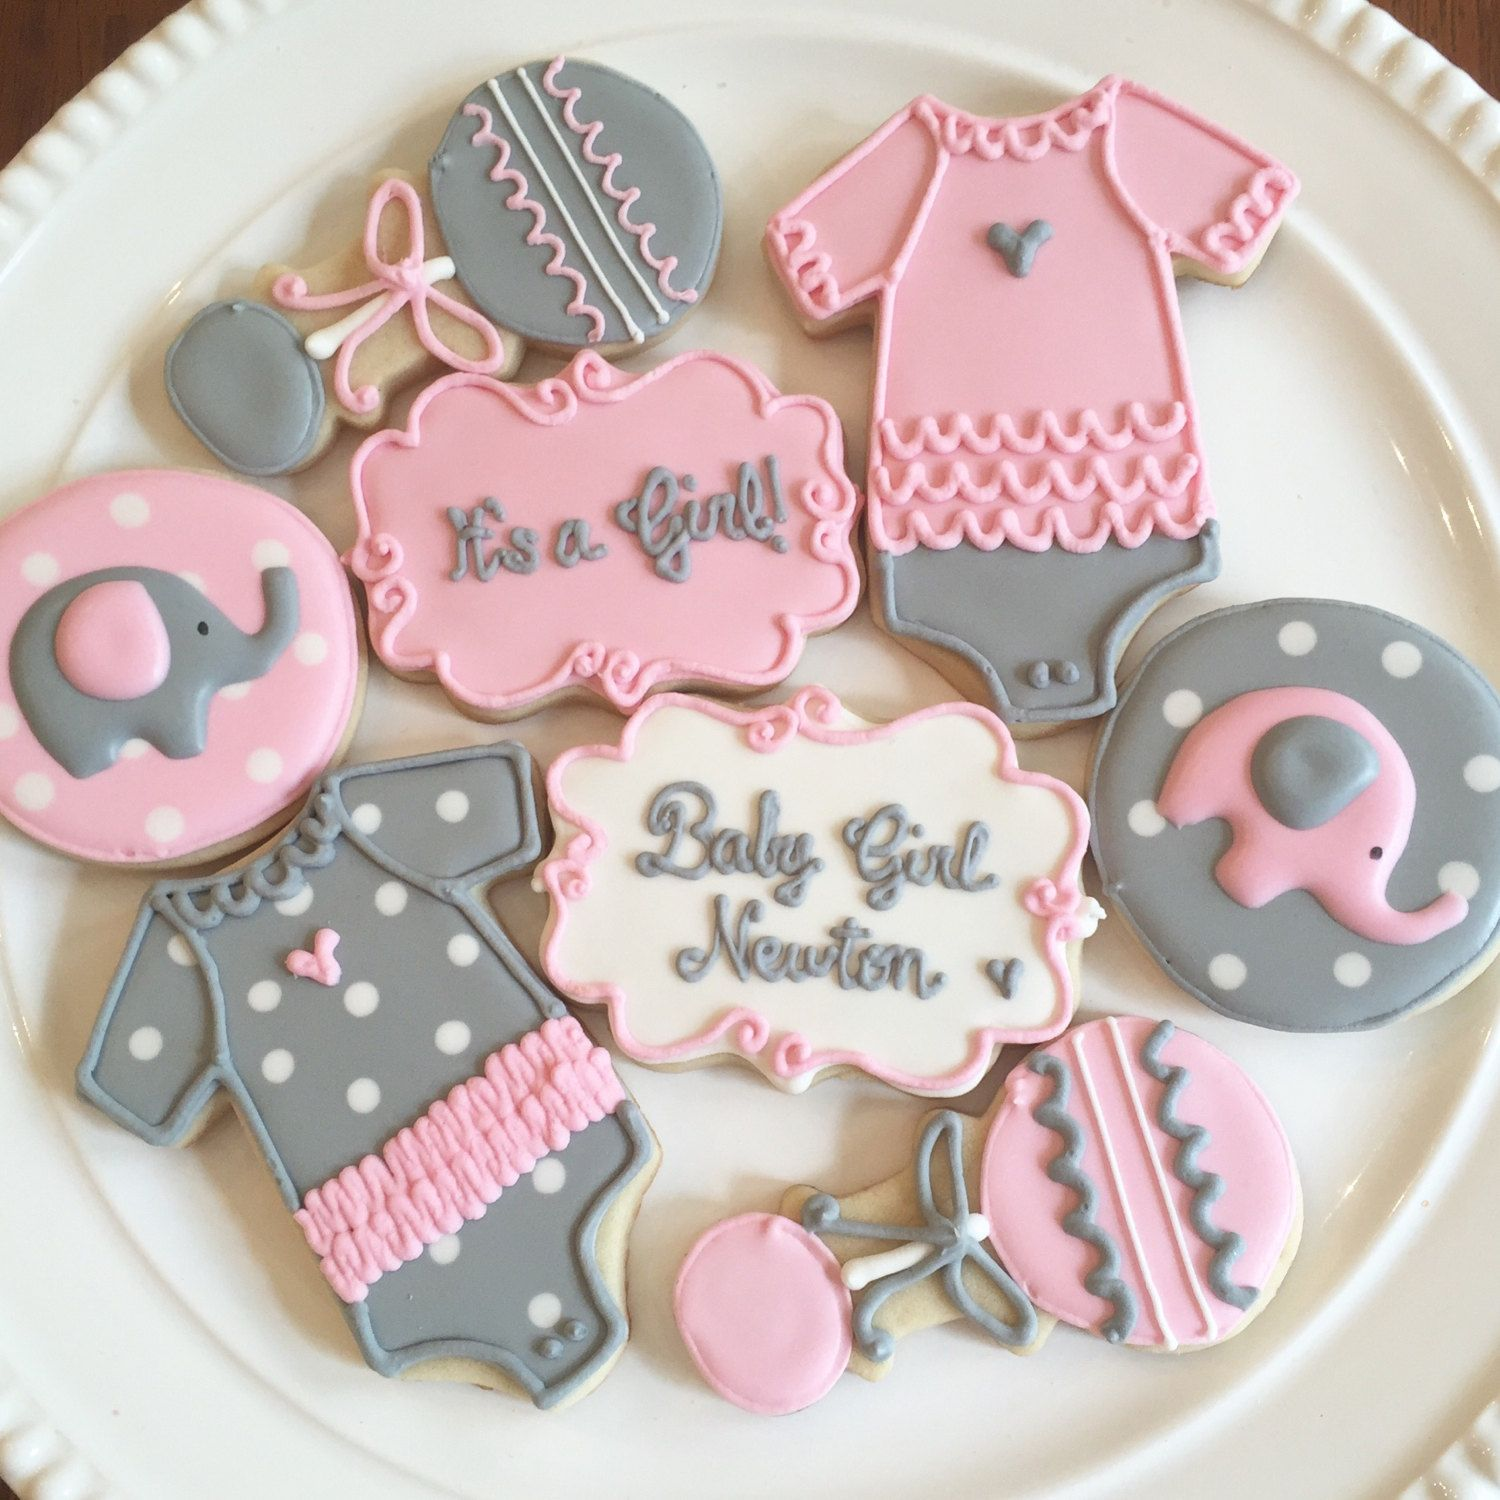 Image Result For Baby Shower Cookies Pink Grey White Elephants